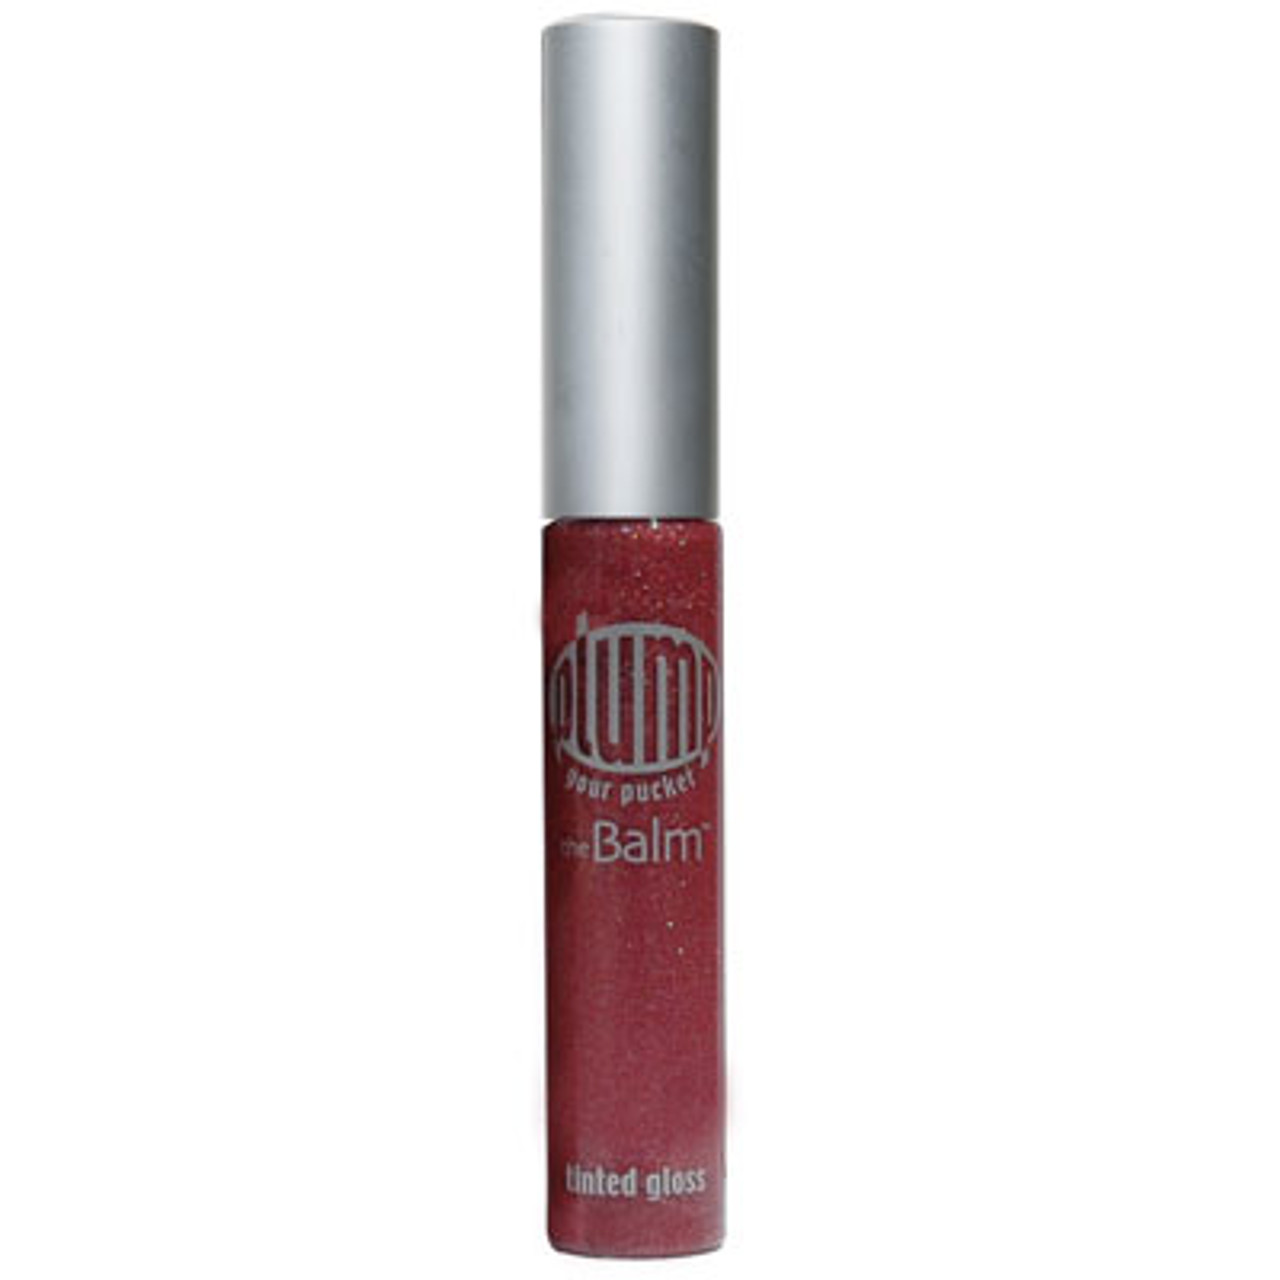 theBalm Plump Your Pucker Tinted Gloss Passion My Fruit